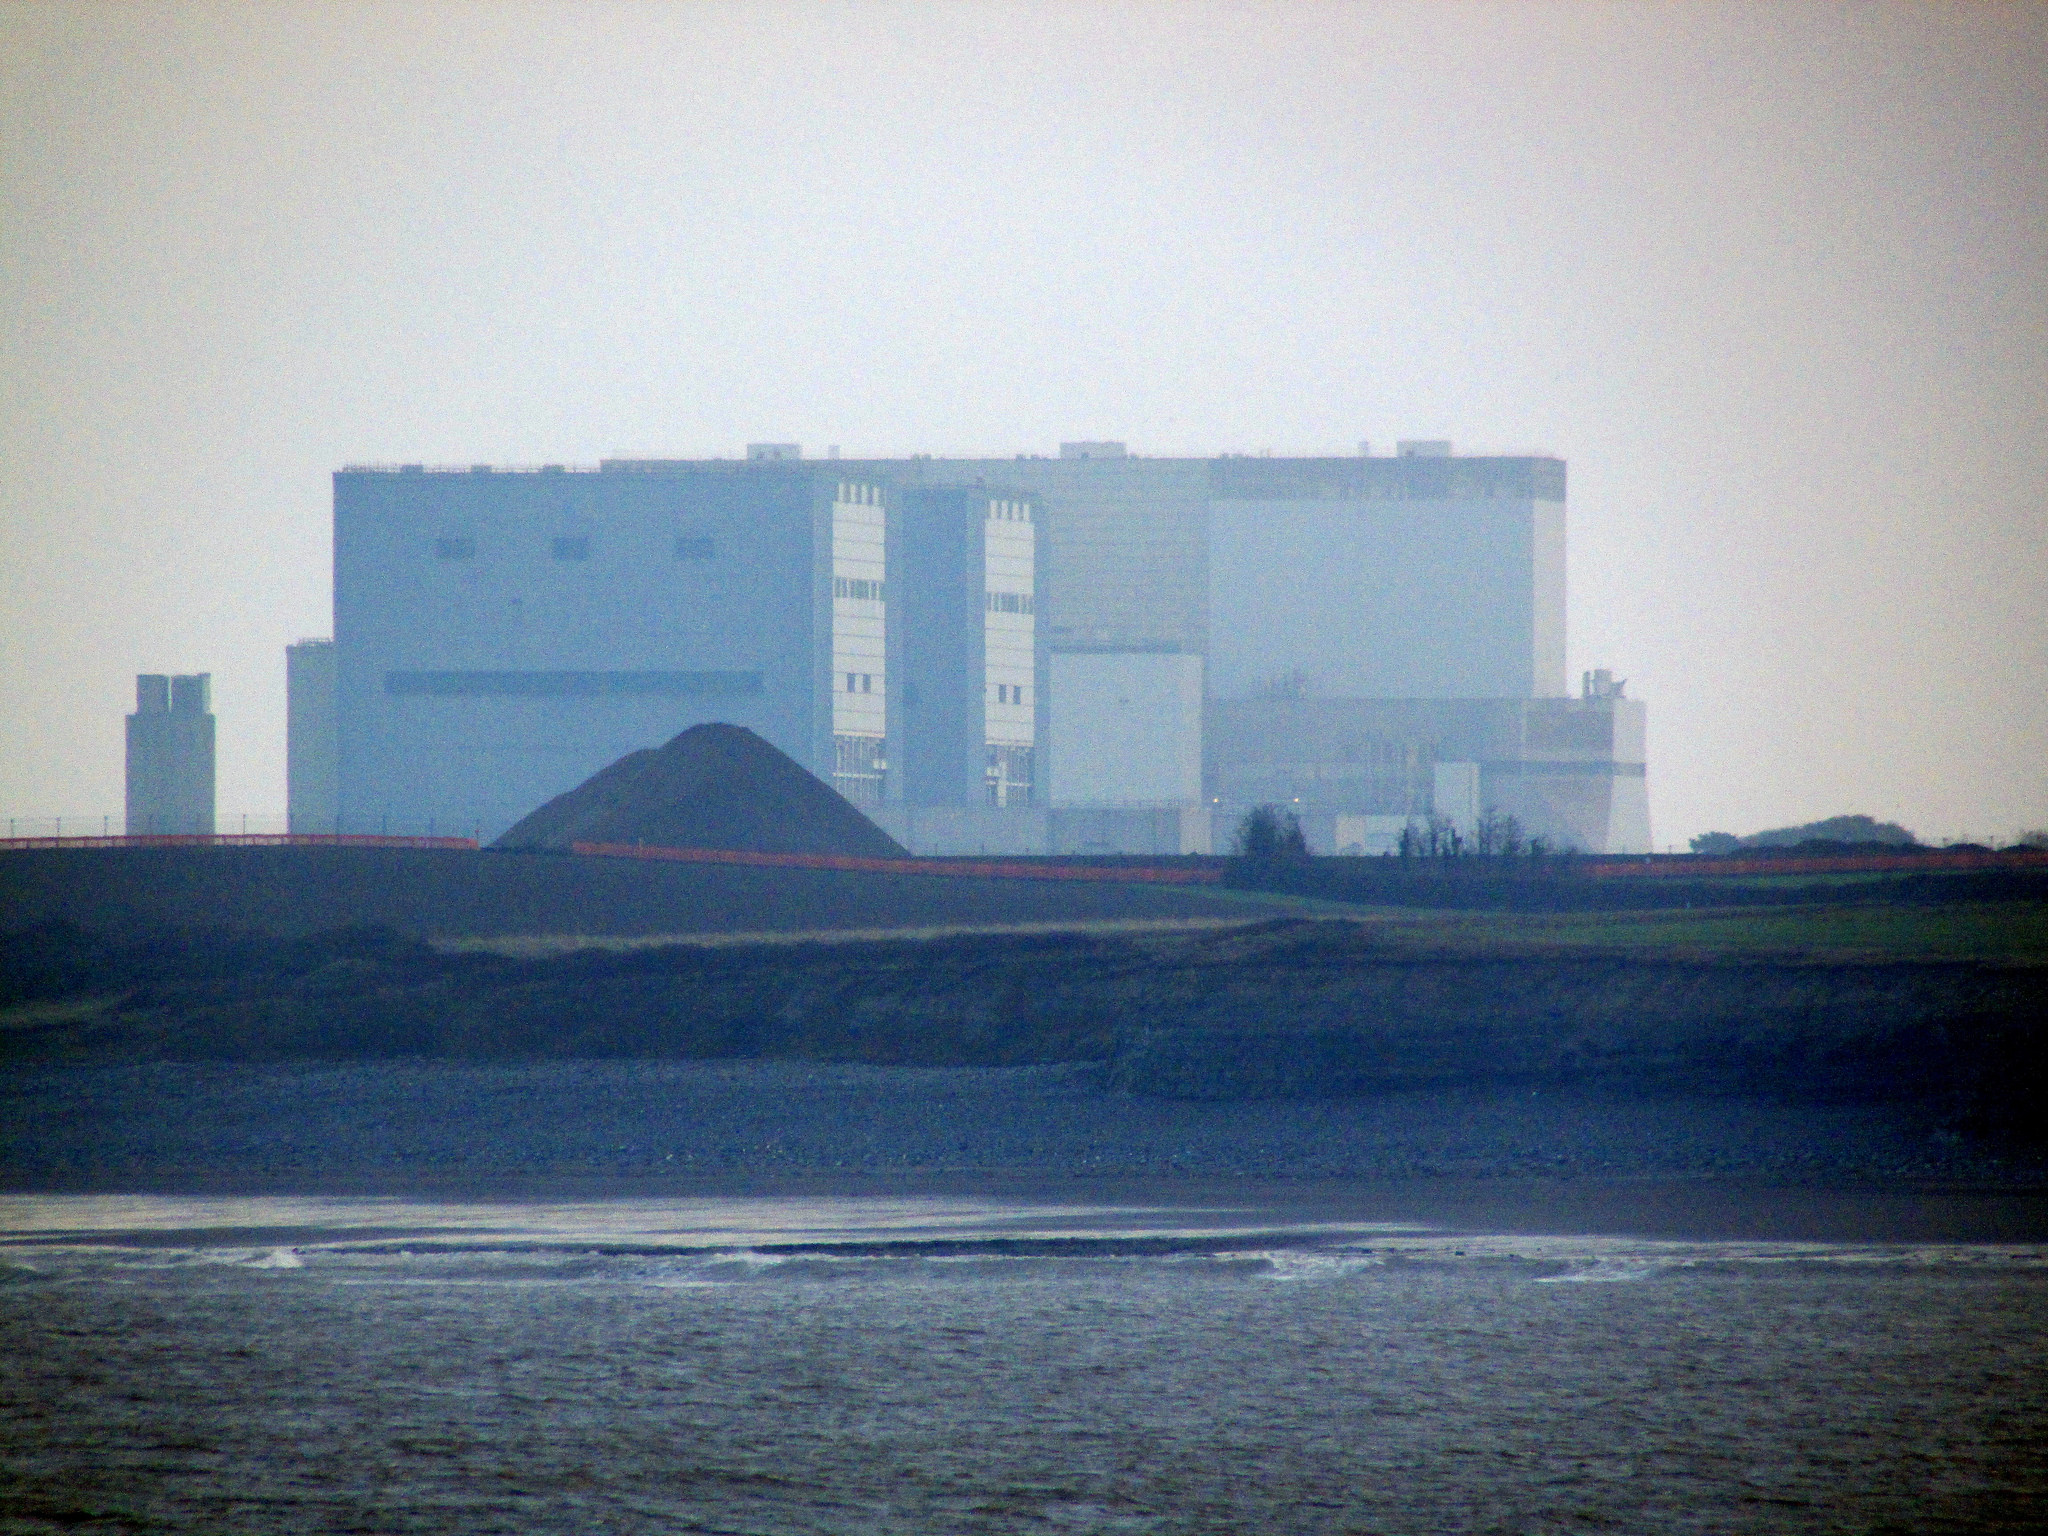 Gorsafoedd Trydan Hinkley Point gan (h/c) Reading Tom, https://www.flickr.com/photos/16801915@N06/18993808376/